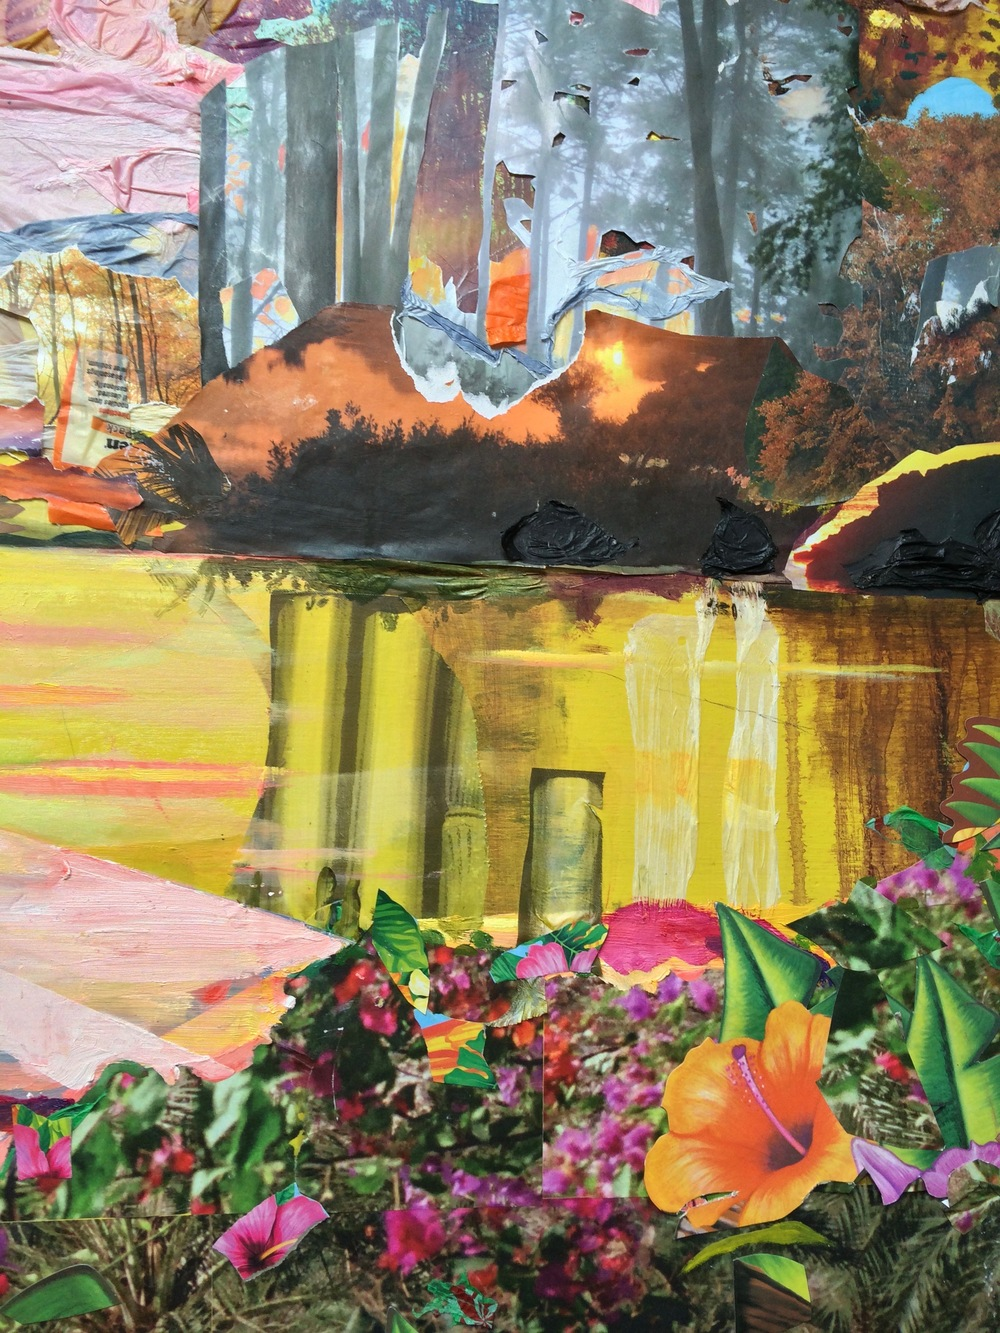 Sunset for Fred Church  (detail) ,  2016, acrylic, oil, plastic tablecloths, nature calendars, Top Ramen packaging, tiki party favors, plastic bag, and photos on board, 36 x 60 x 2 inches